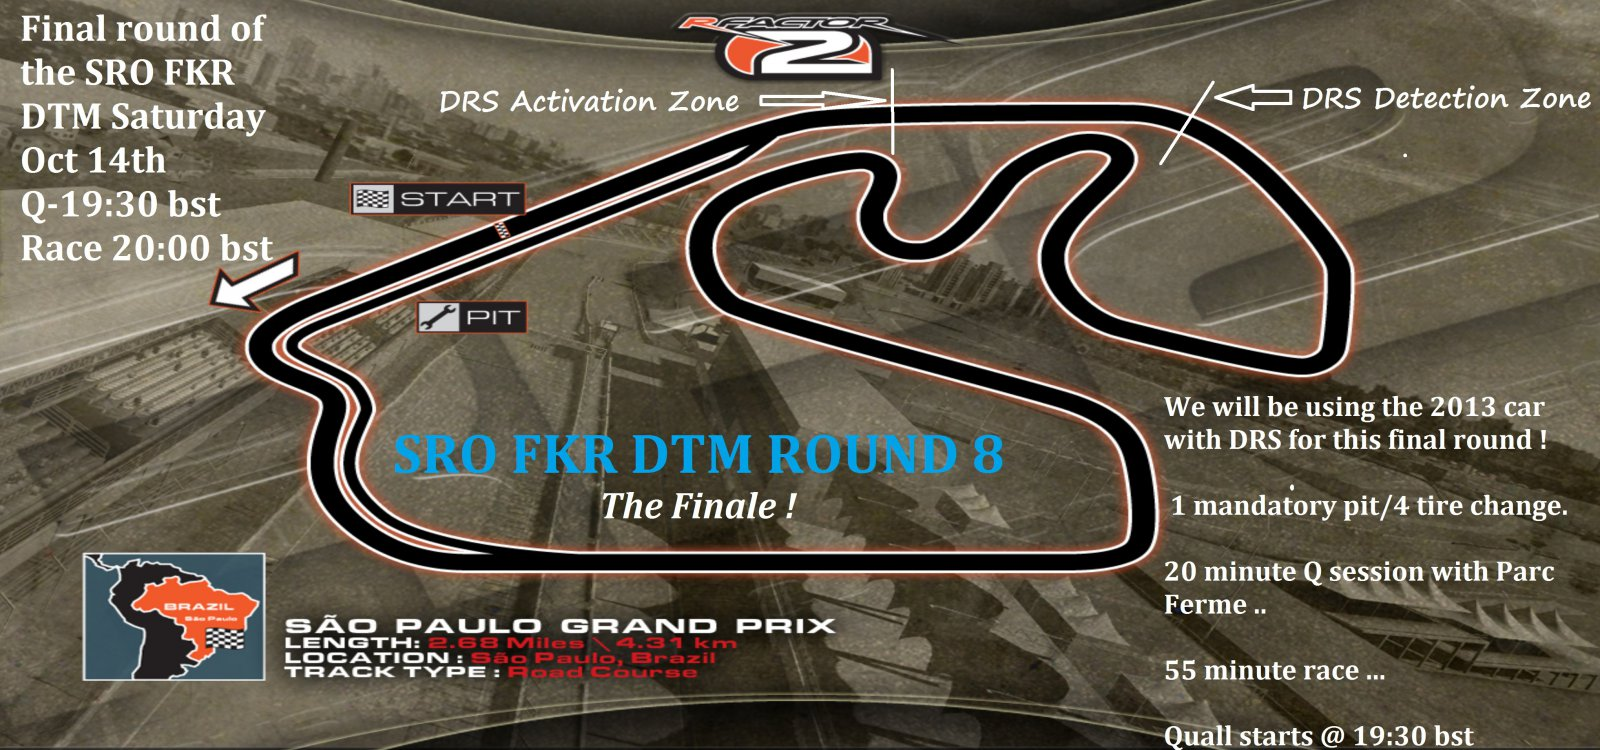 DTM round 8 home page.jpg